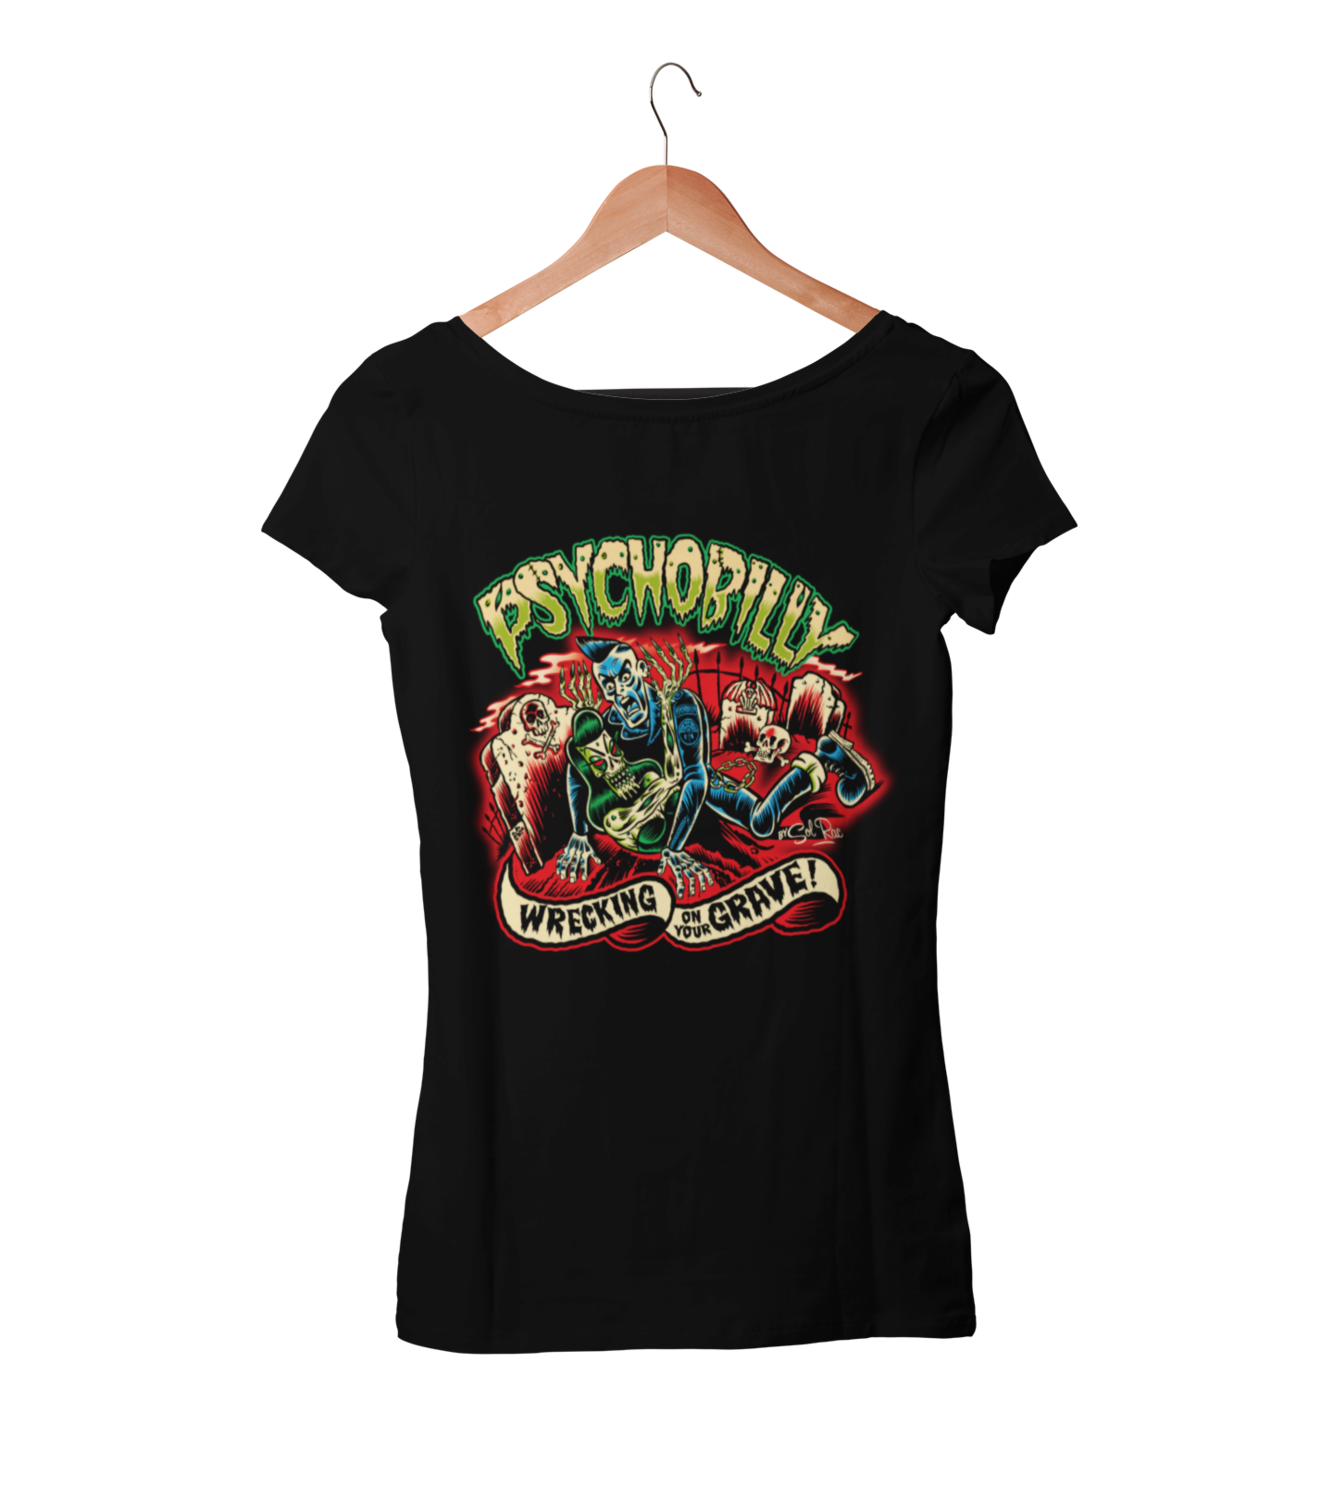 PSYCHOBILLY WRECKING ON YOUR GRAVE T-SHIRT WOMAN BY SOL RAC